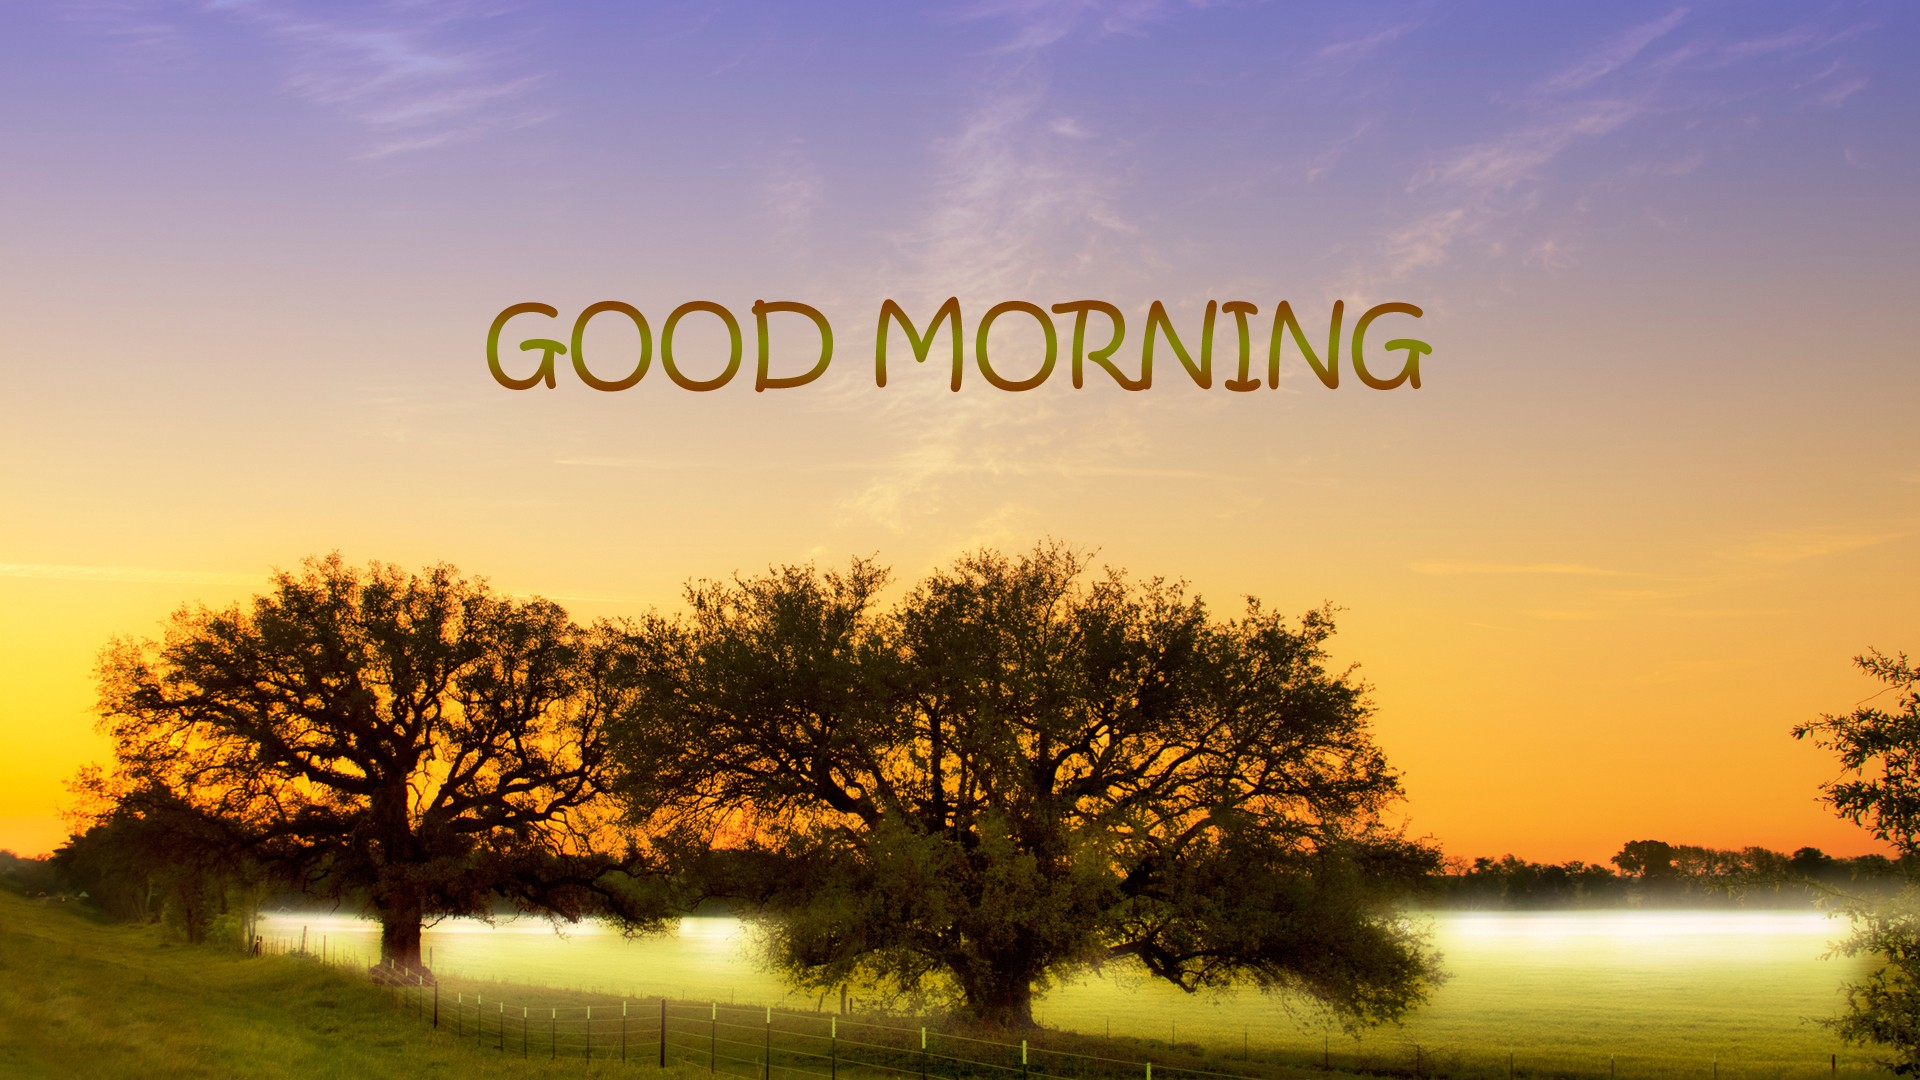 Good Morning HD Wallpaper Pictures Hd Wallpapers 1920x1080